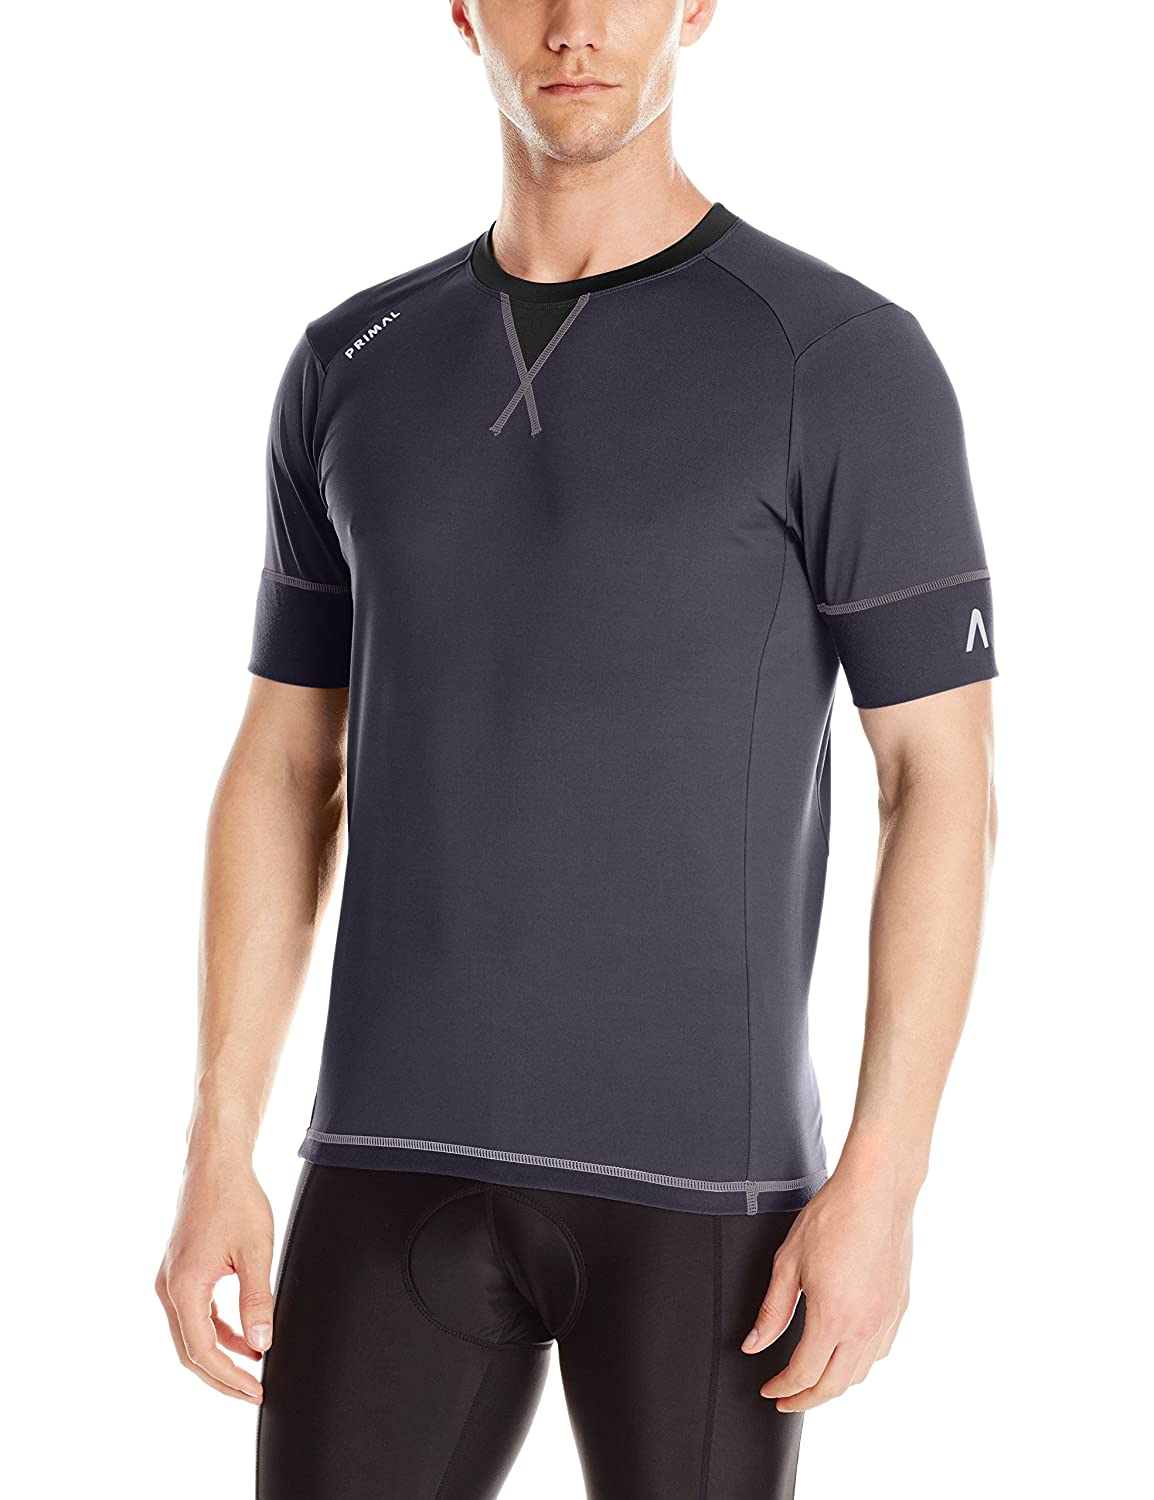 Primal Wear Herren Haven Jersey